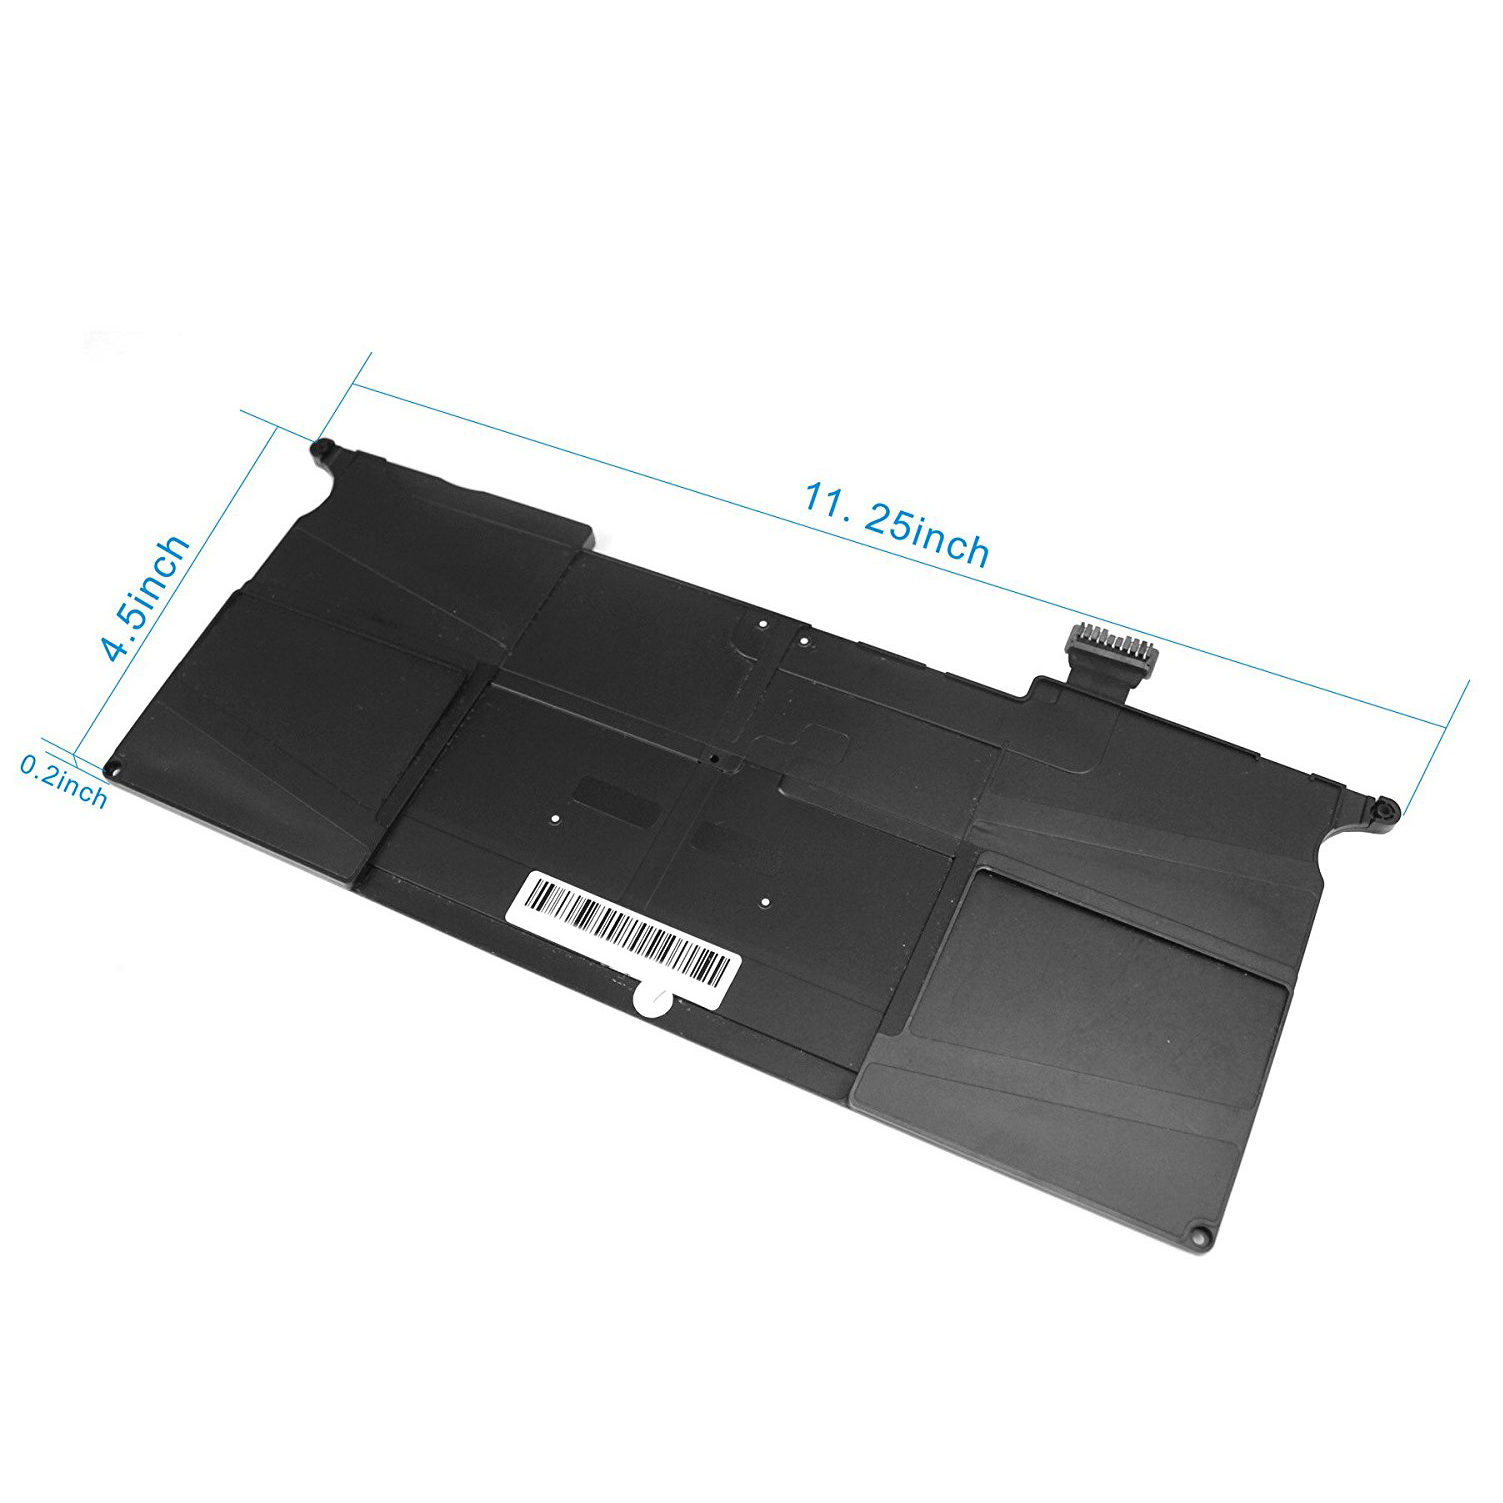 Ebk A1406 A1495 Replacement Mac Book Air Battery For 11 Baterai Macbook A1465 2013 A1370 Laptop